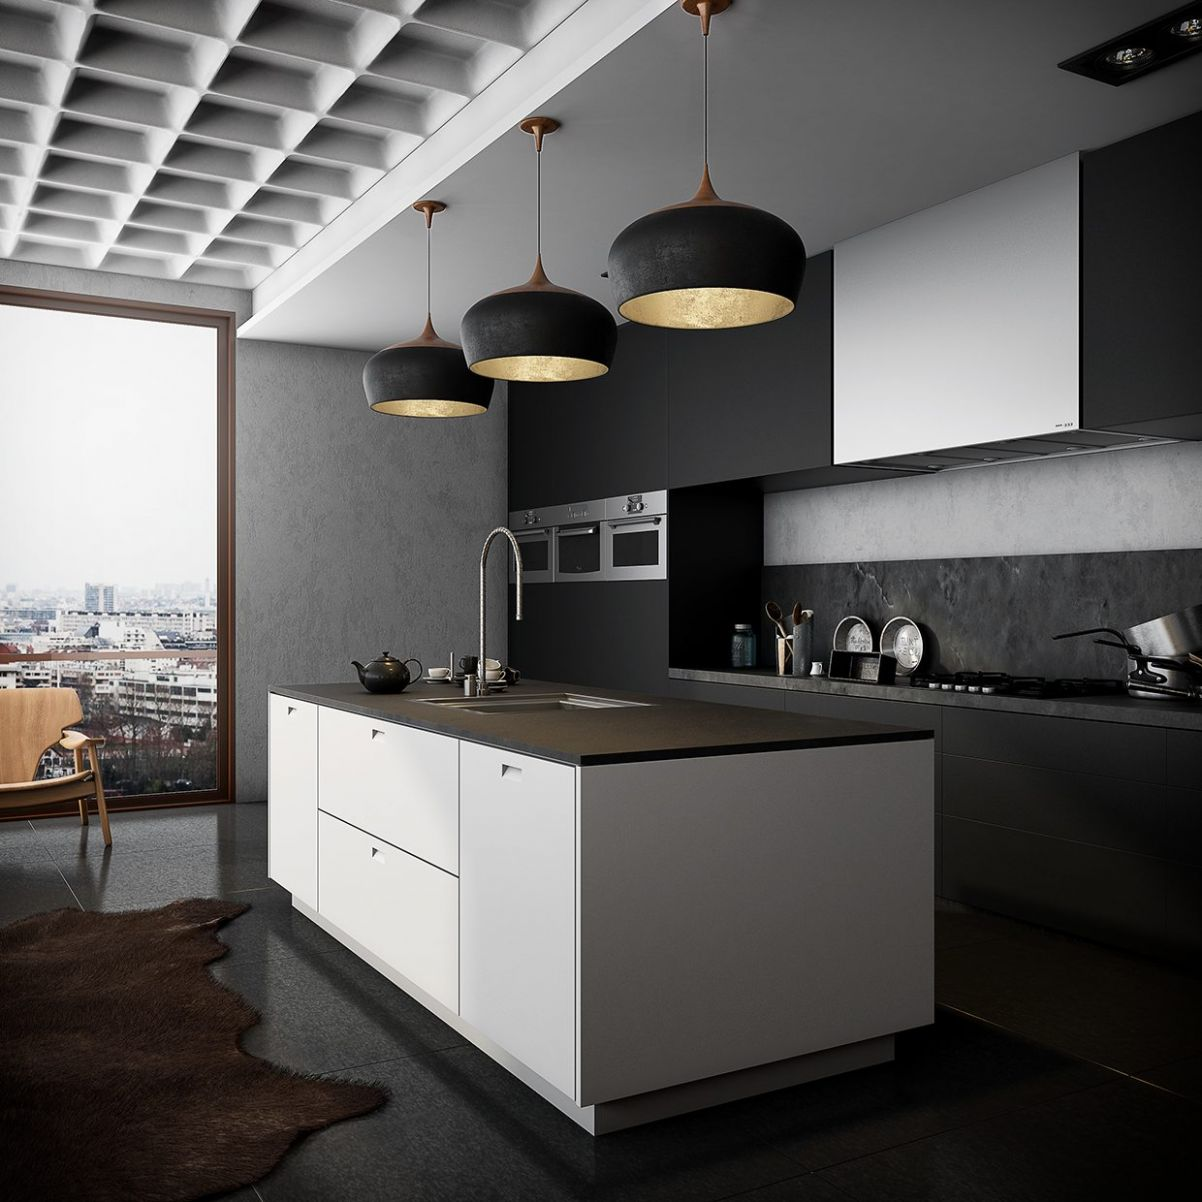 11 Stunning Black Kitchens That Tempt You To Go Dark For Your Next ...